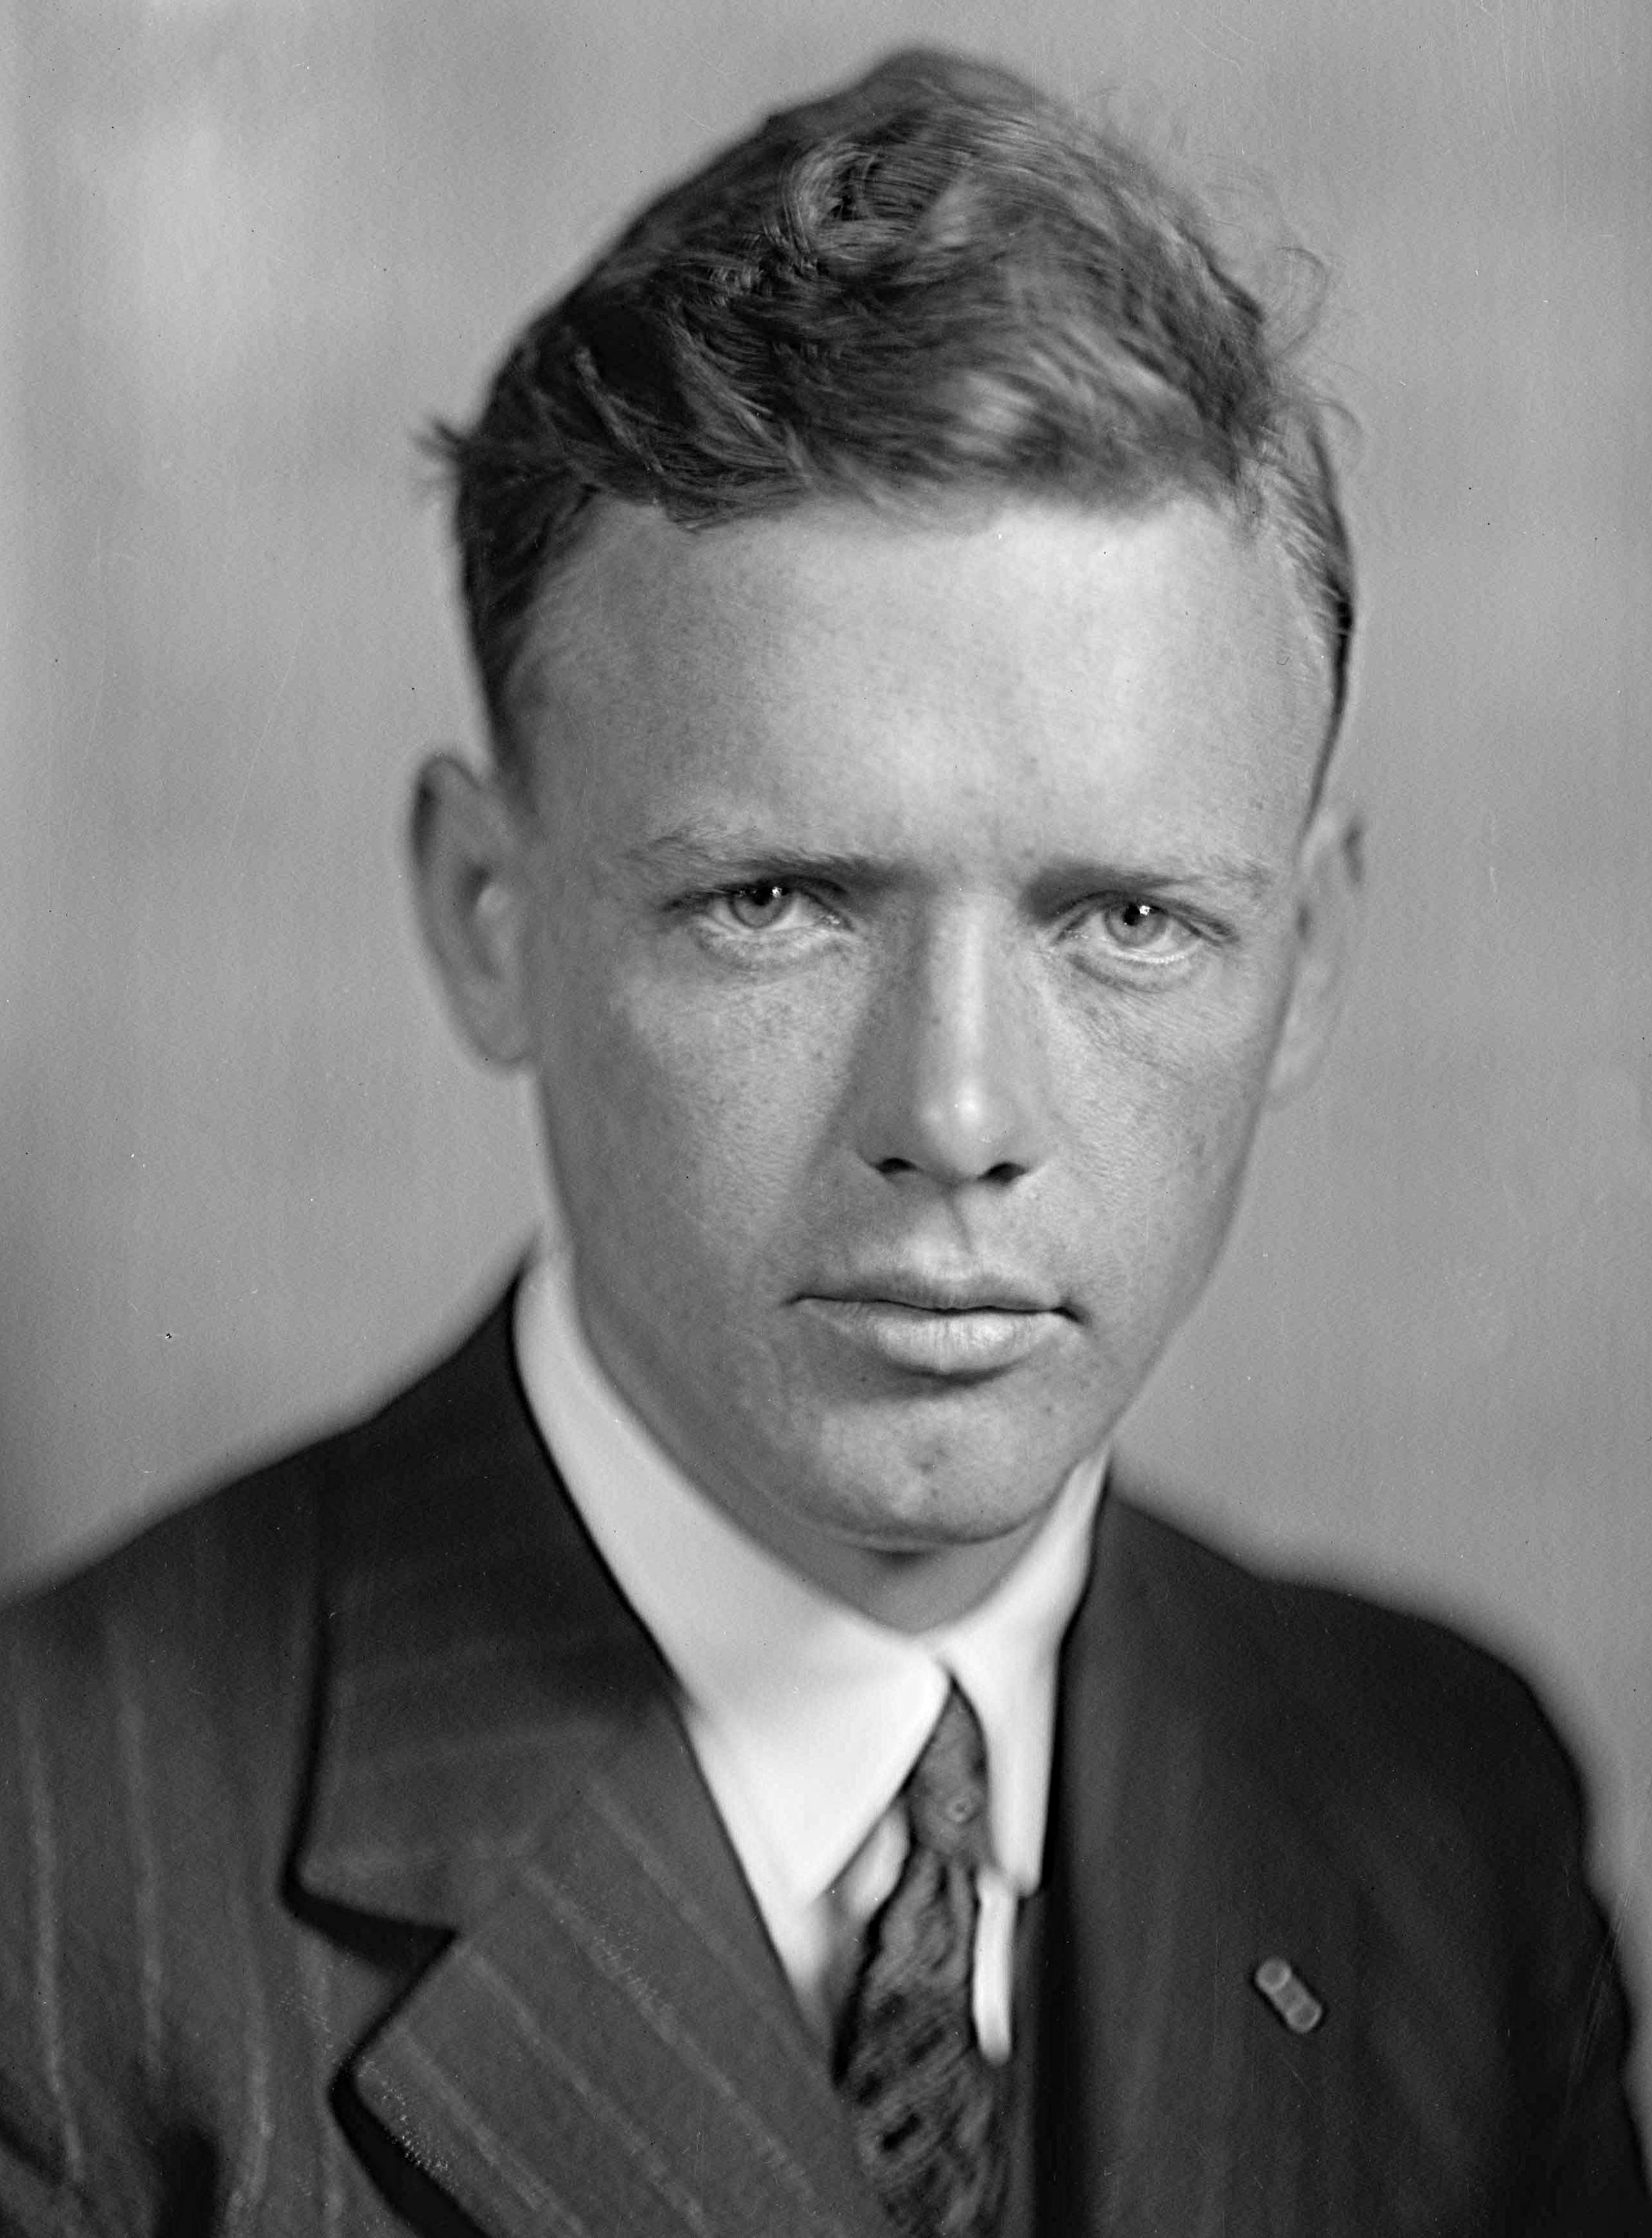 Charles Lindbergh Harris & Ewing - This image is available from the United States Library of Congress's Prints and Photographs division